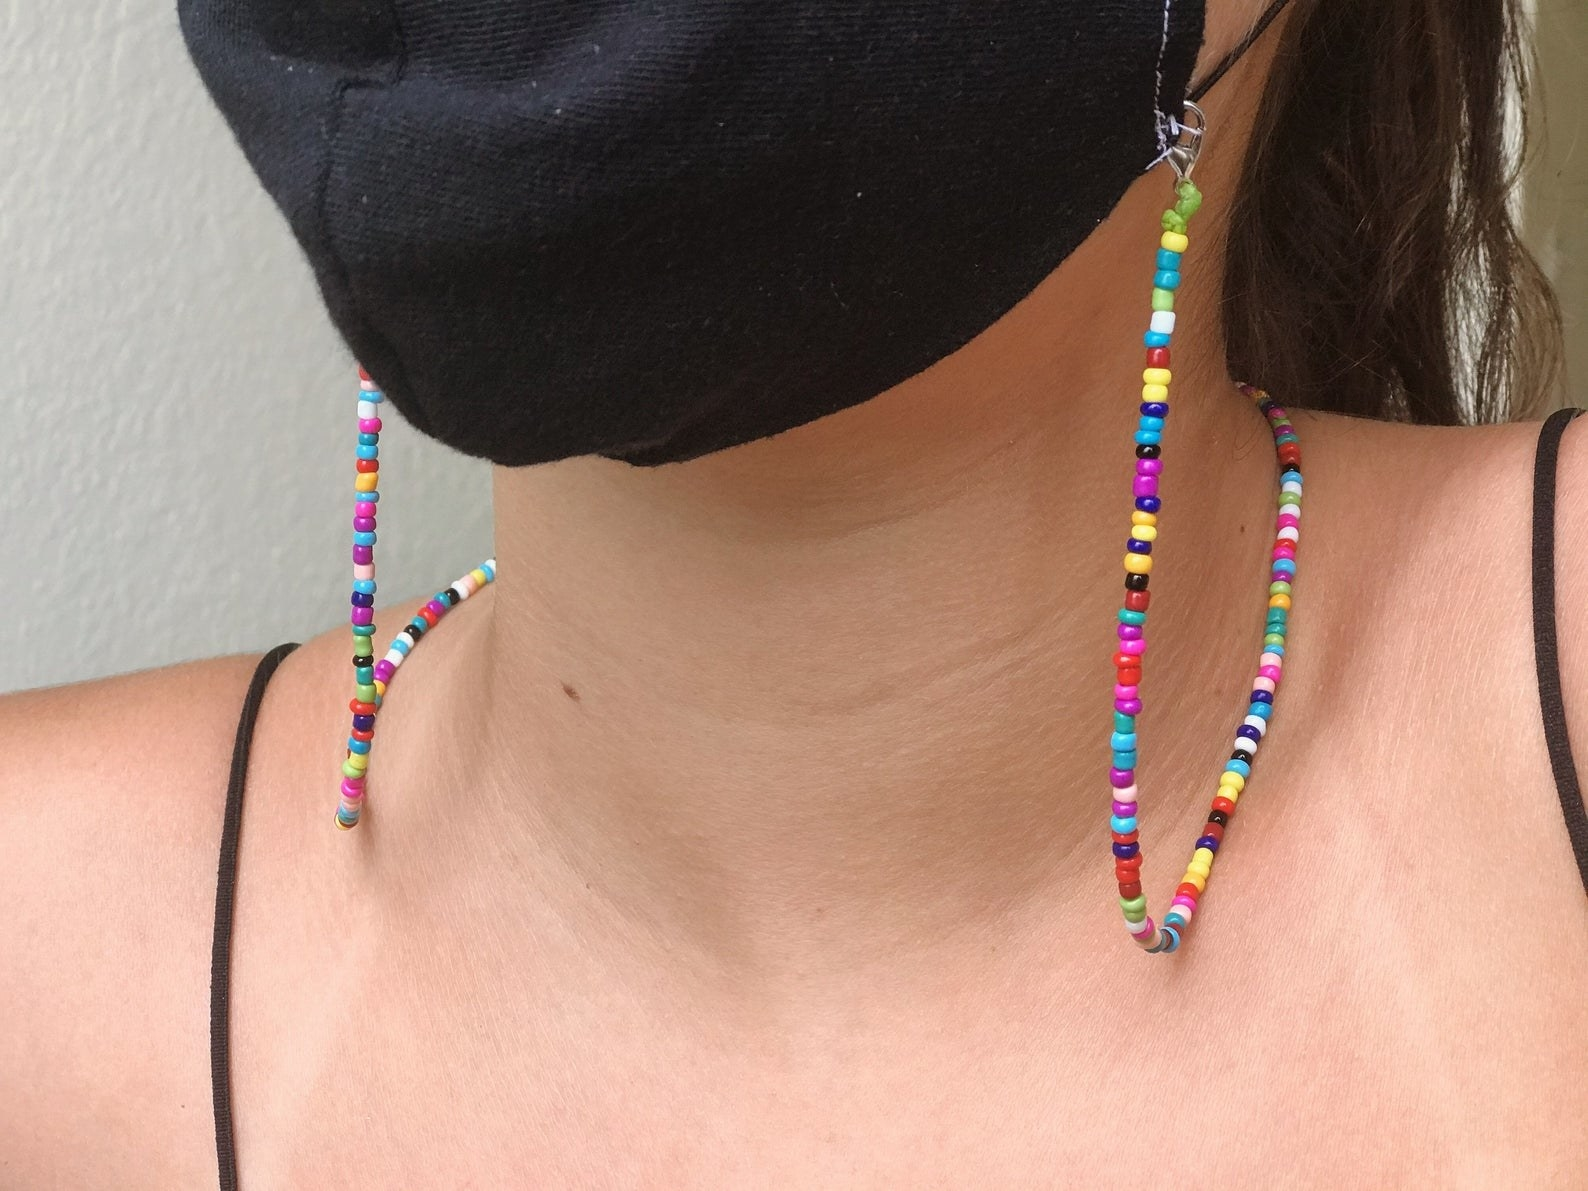 Model wearing a face mask with rainbow beaded chain attached to it